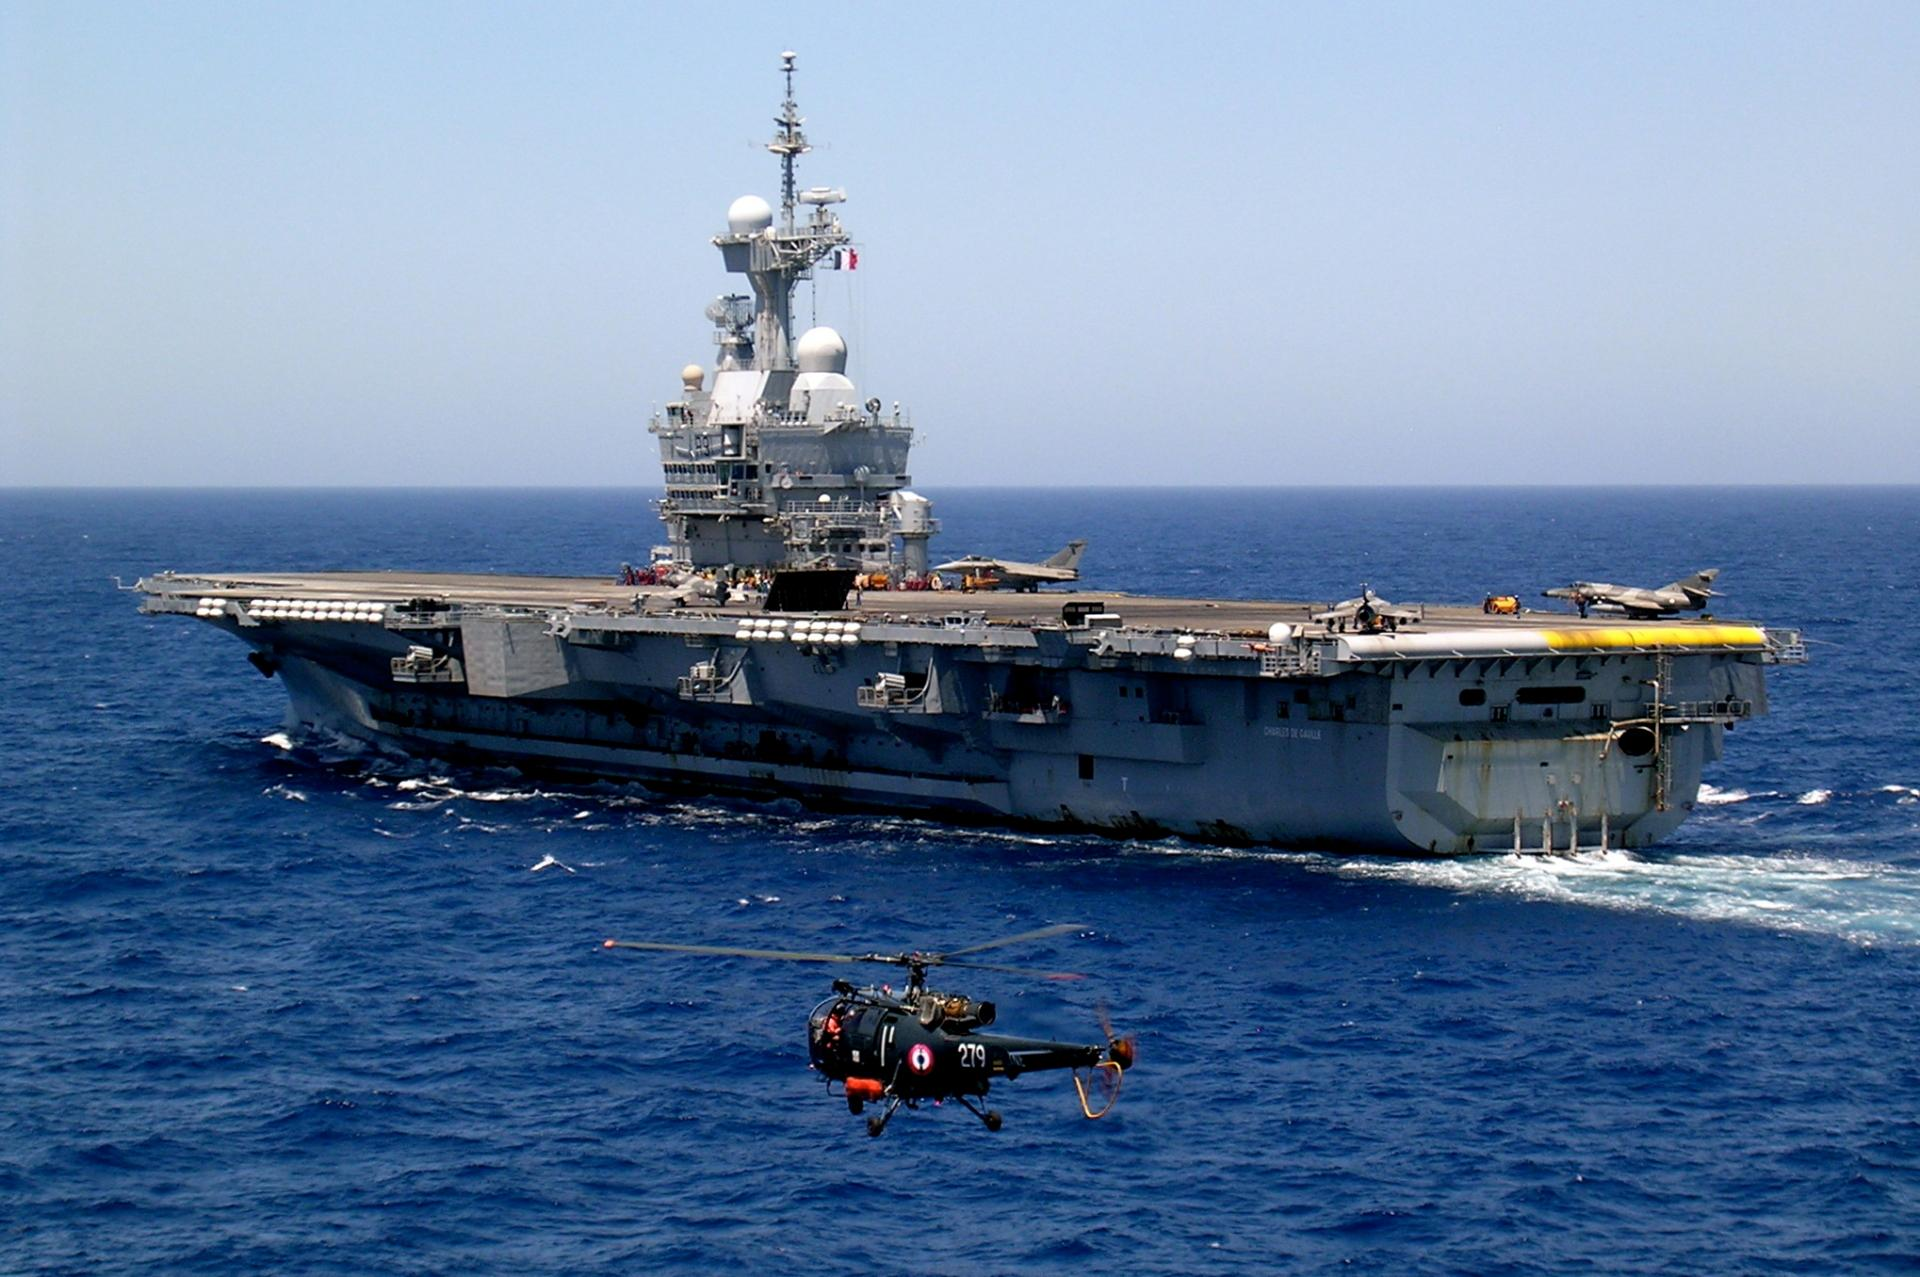 French Aircraft Carrier Charles De Gaulle (R91) wallpapers HD quality